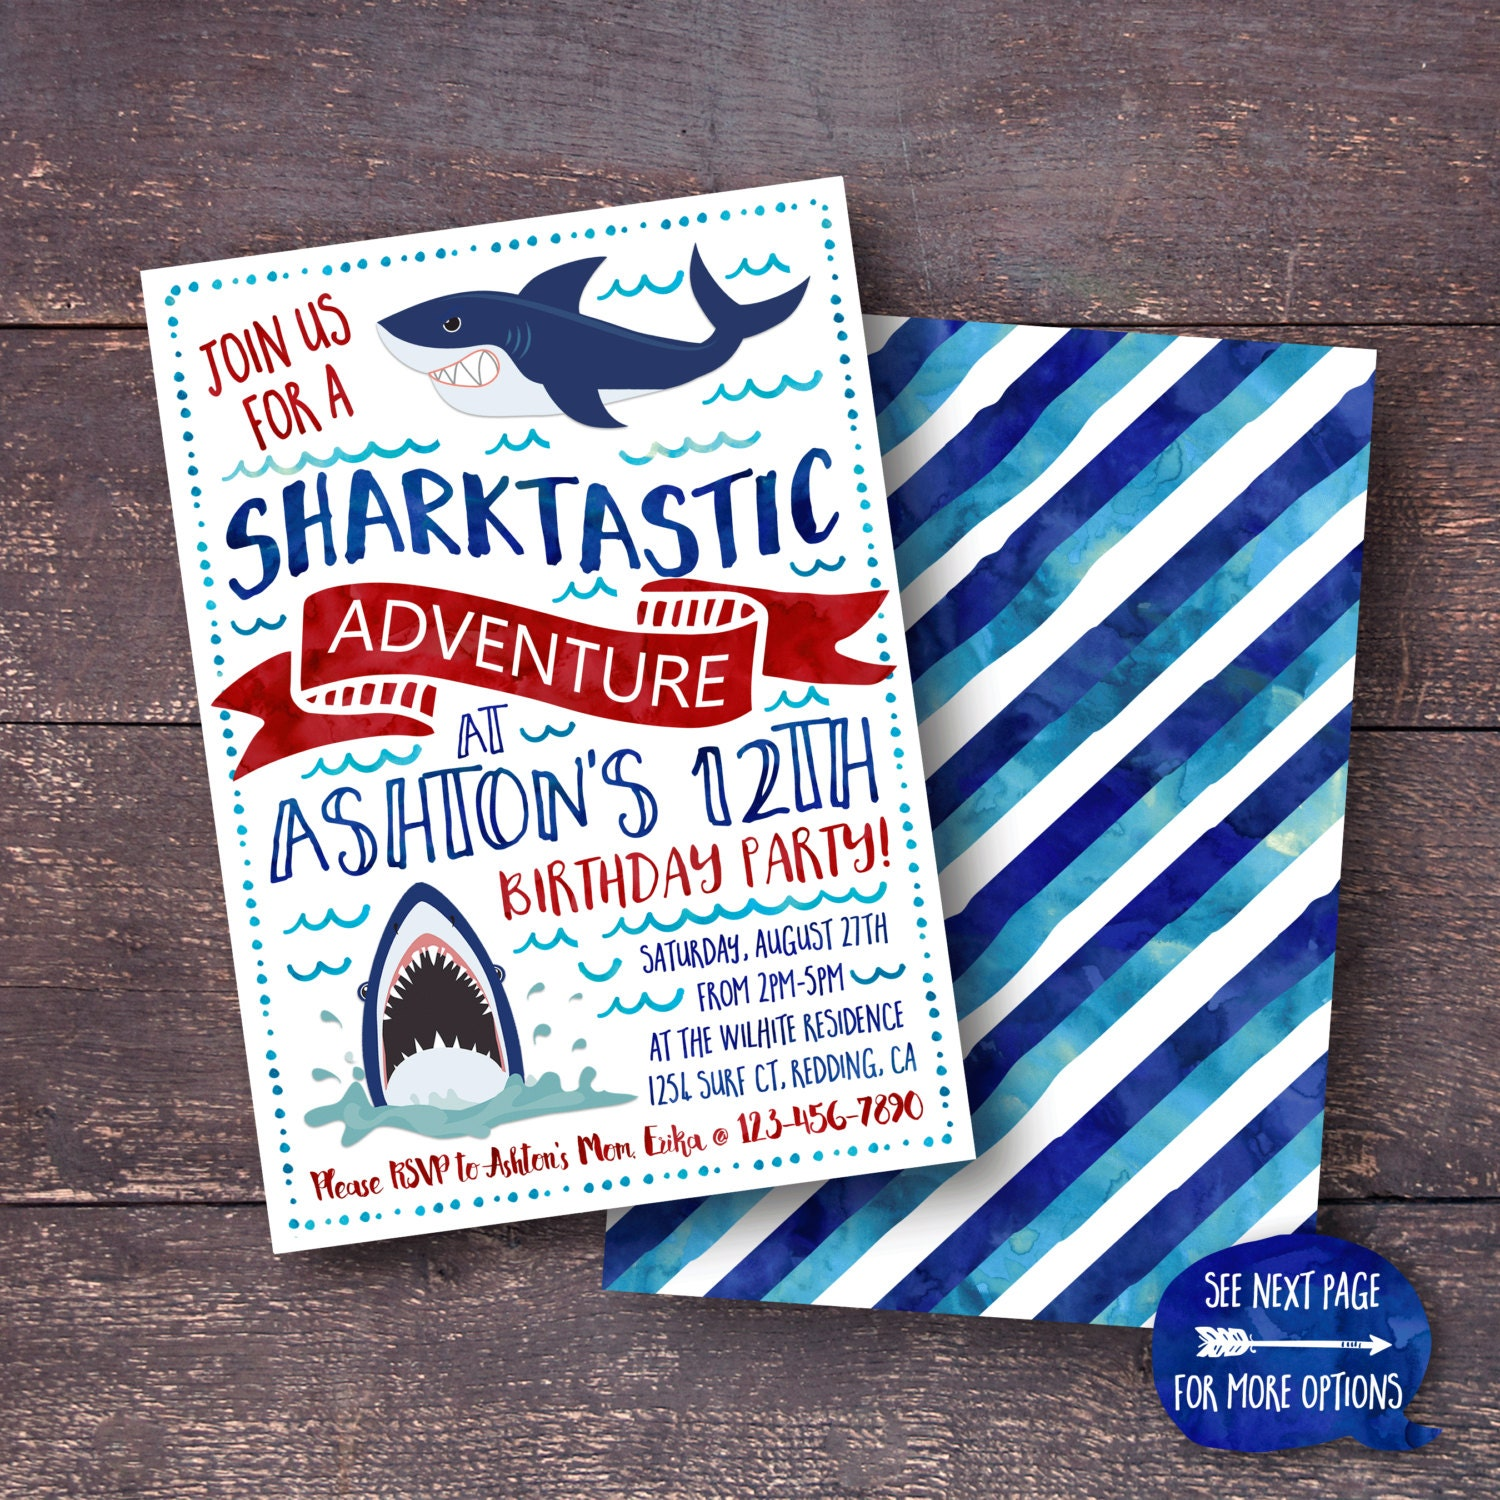 Shark birthday party invitation topsimages shark invitation shark birthday invitation shark party etsy jpg 1500x1500 shark birthday party invitation filmwisefo